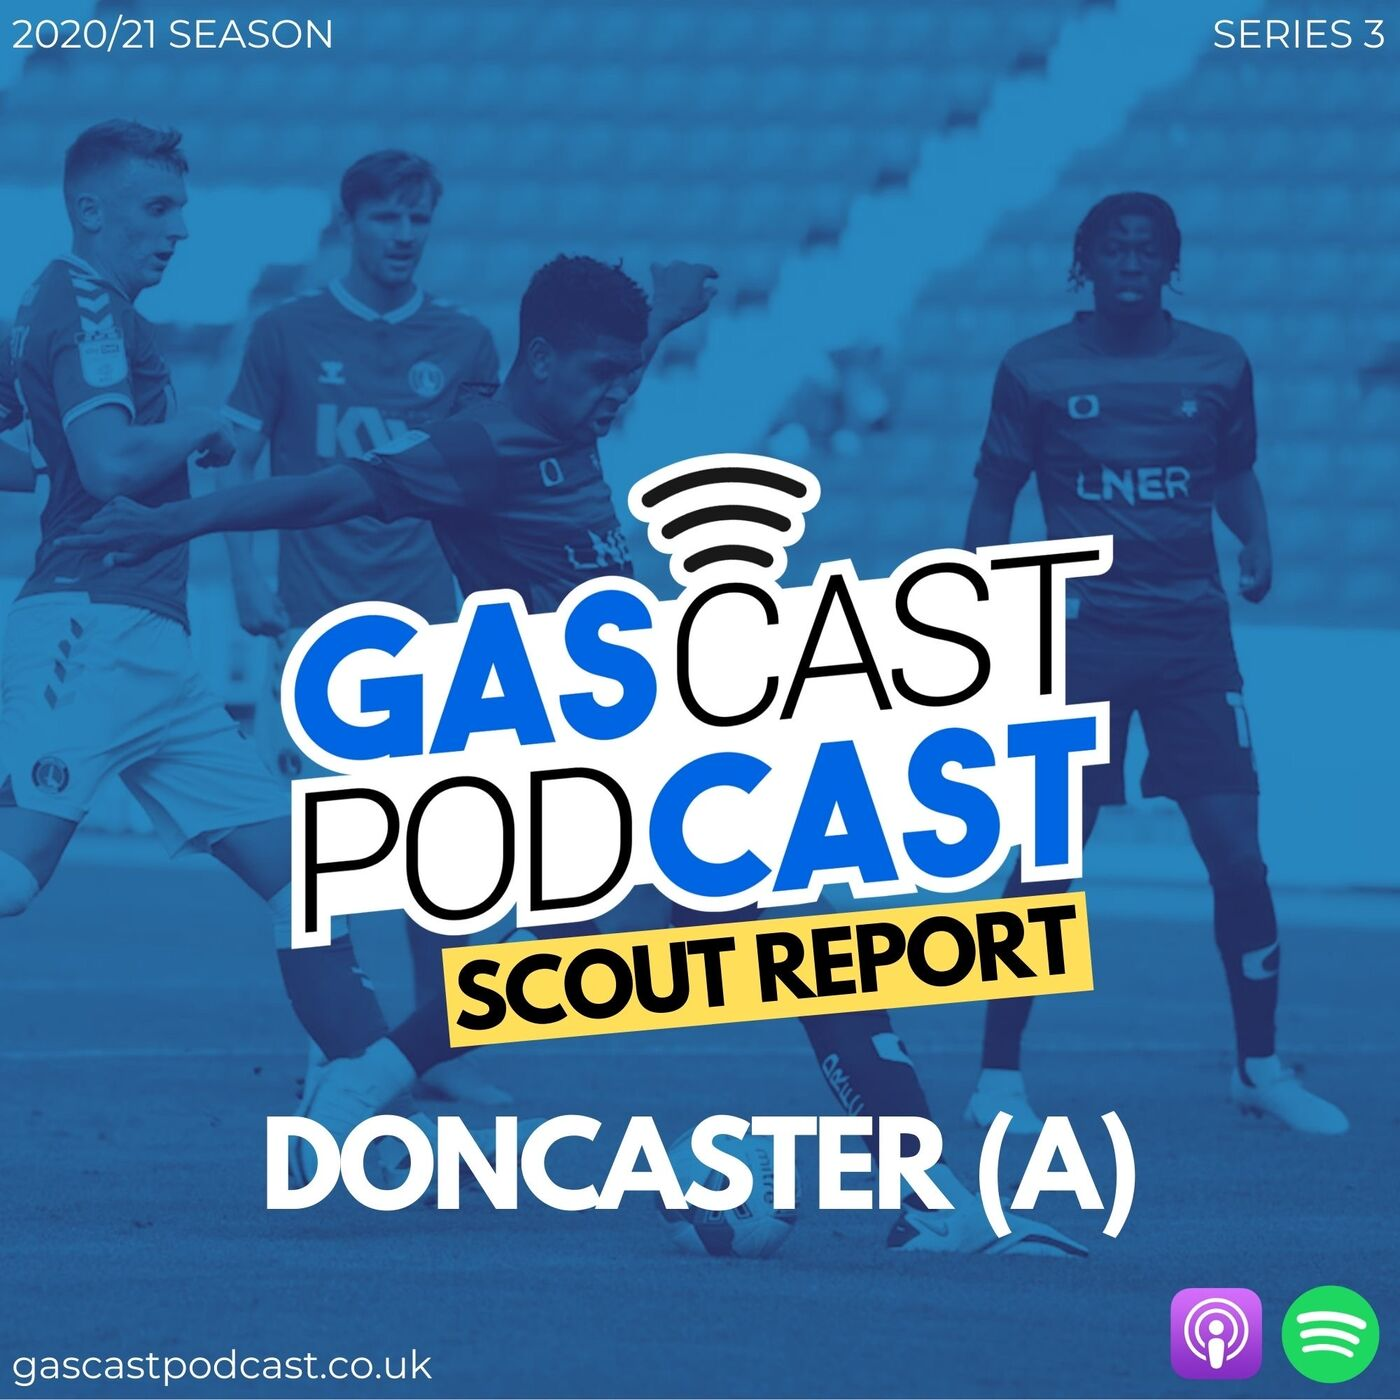 SCOUT REPORT: Doncaster (A)